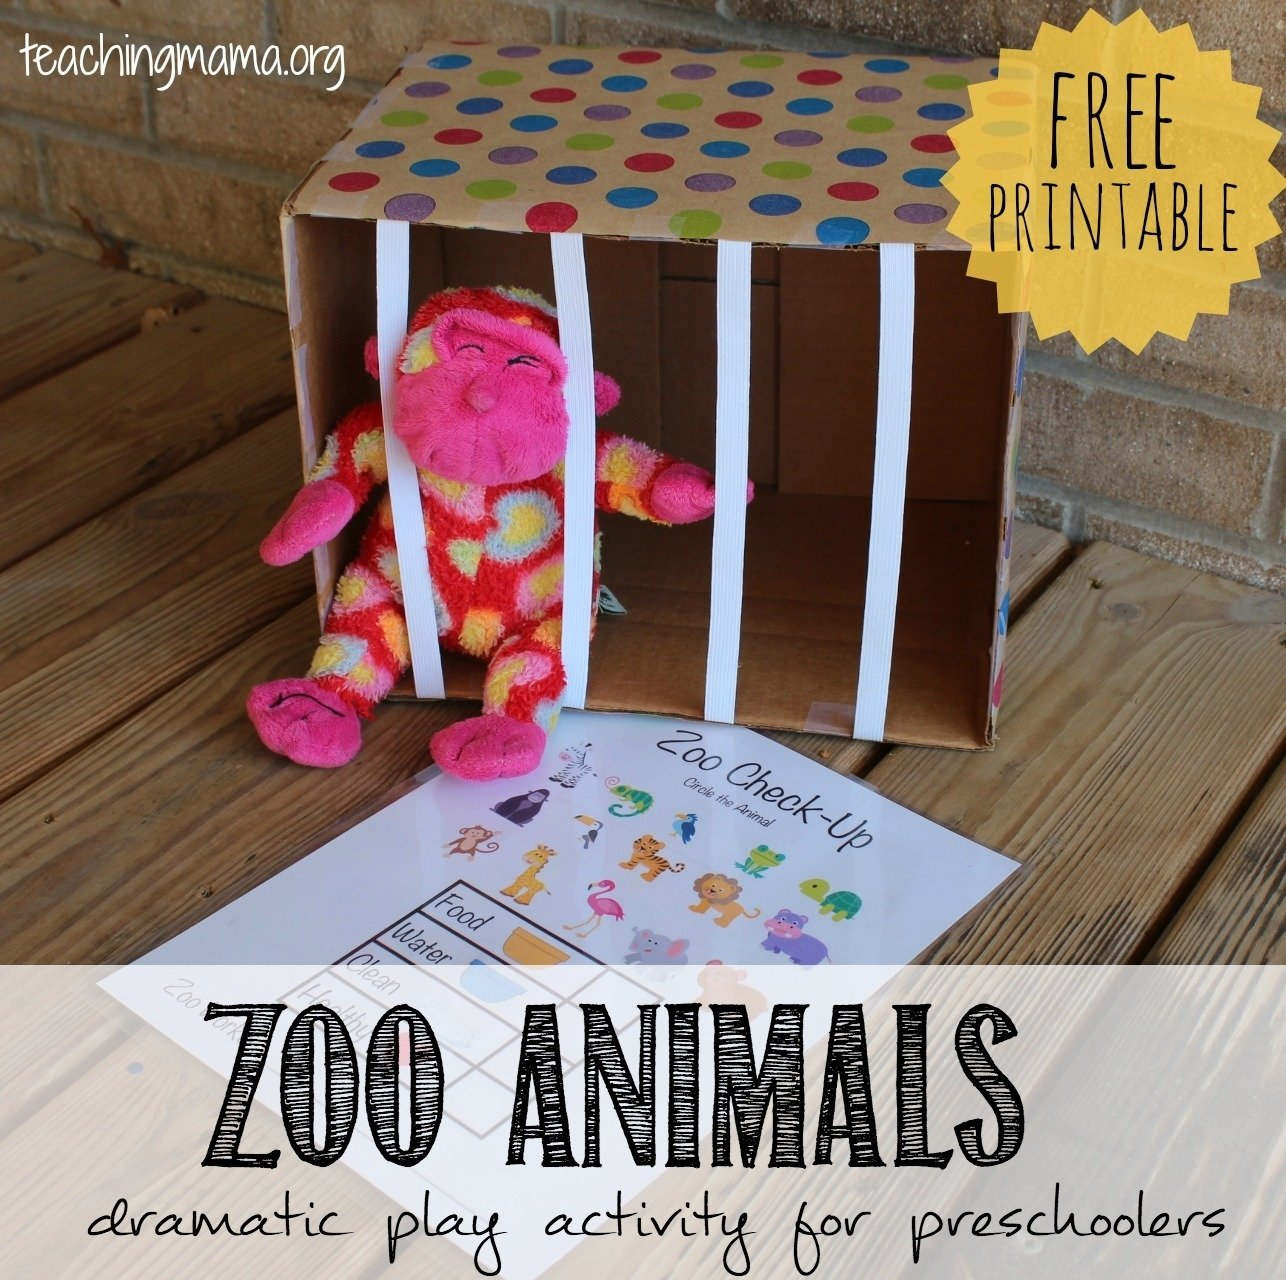 10 Lovely Dramatic Play Ideas For Preschoolers zoo animals dramatic play activity teaching mama 2